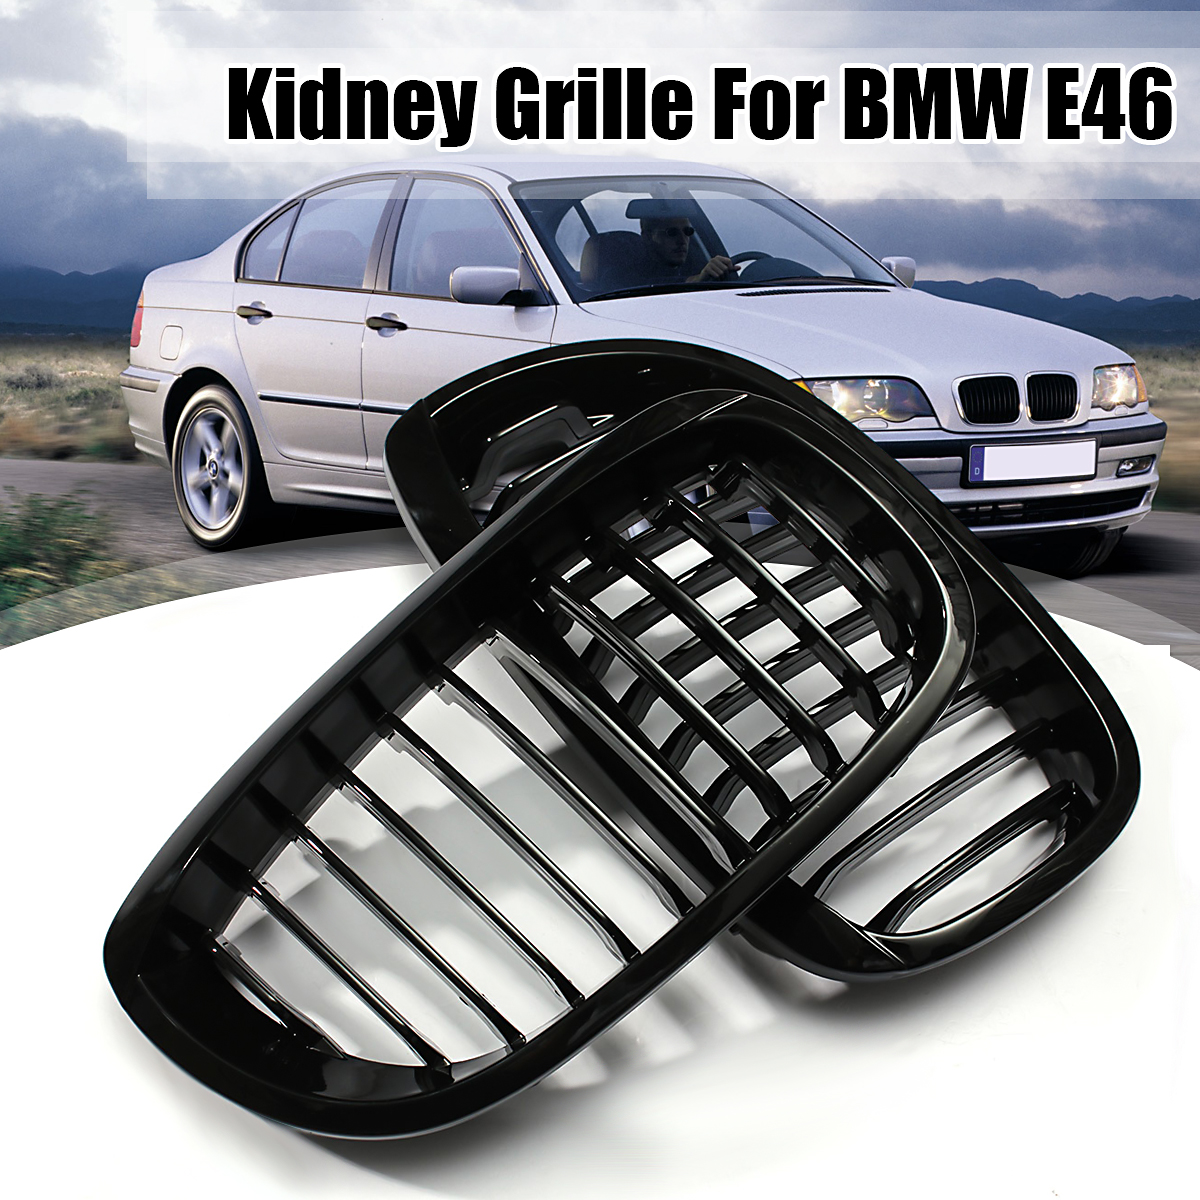 Front Center Kidney Grille Grill for 2003-2006 BMW E46 2-Door Coupe Cabriolet Glossy Black